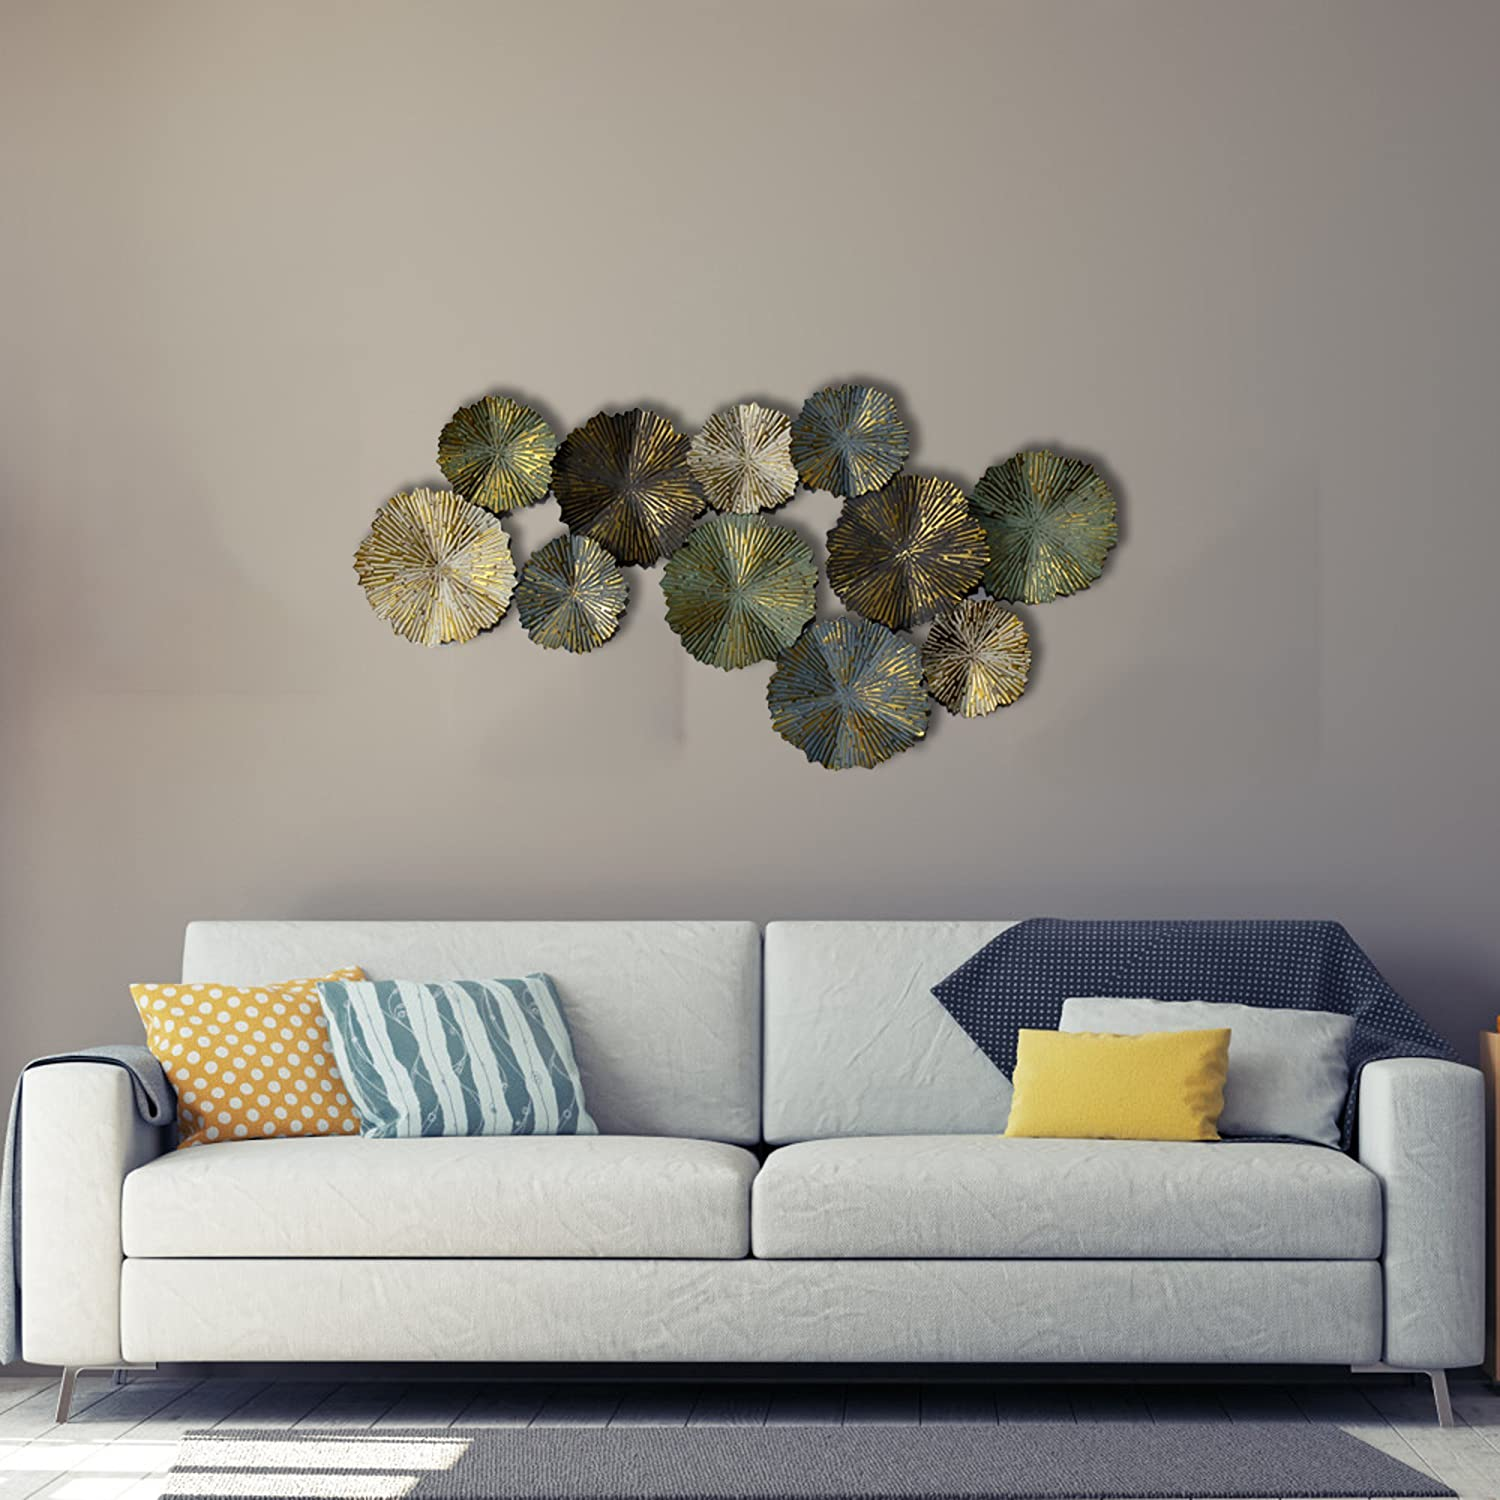 ac6e9c9201 Inhouse Matt Finish Sun Burst Circles Extra Large Metal Wall Art Sculpture  Wall Decor and Hanging: Amazon.co.uk: Kitchen & Home